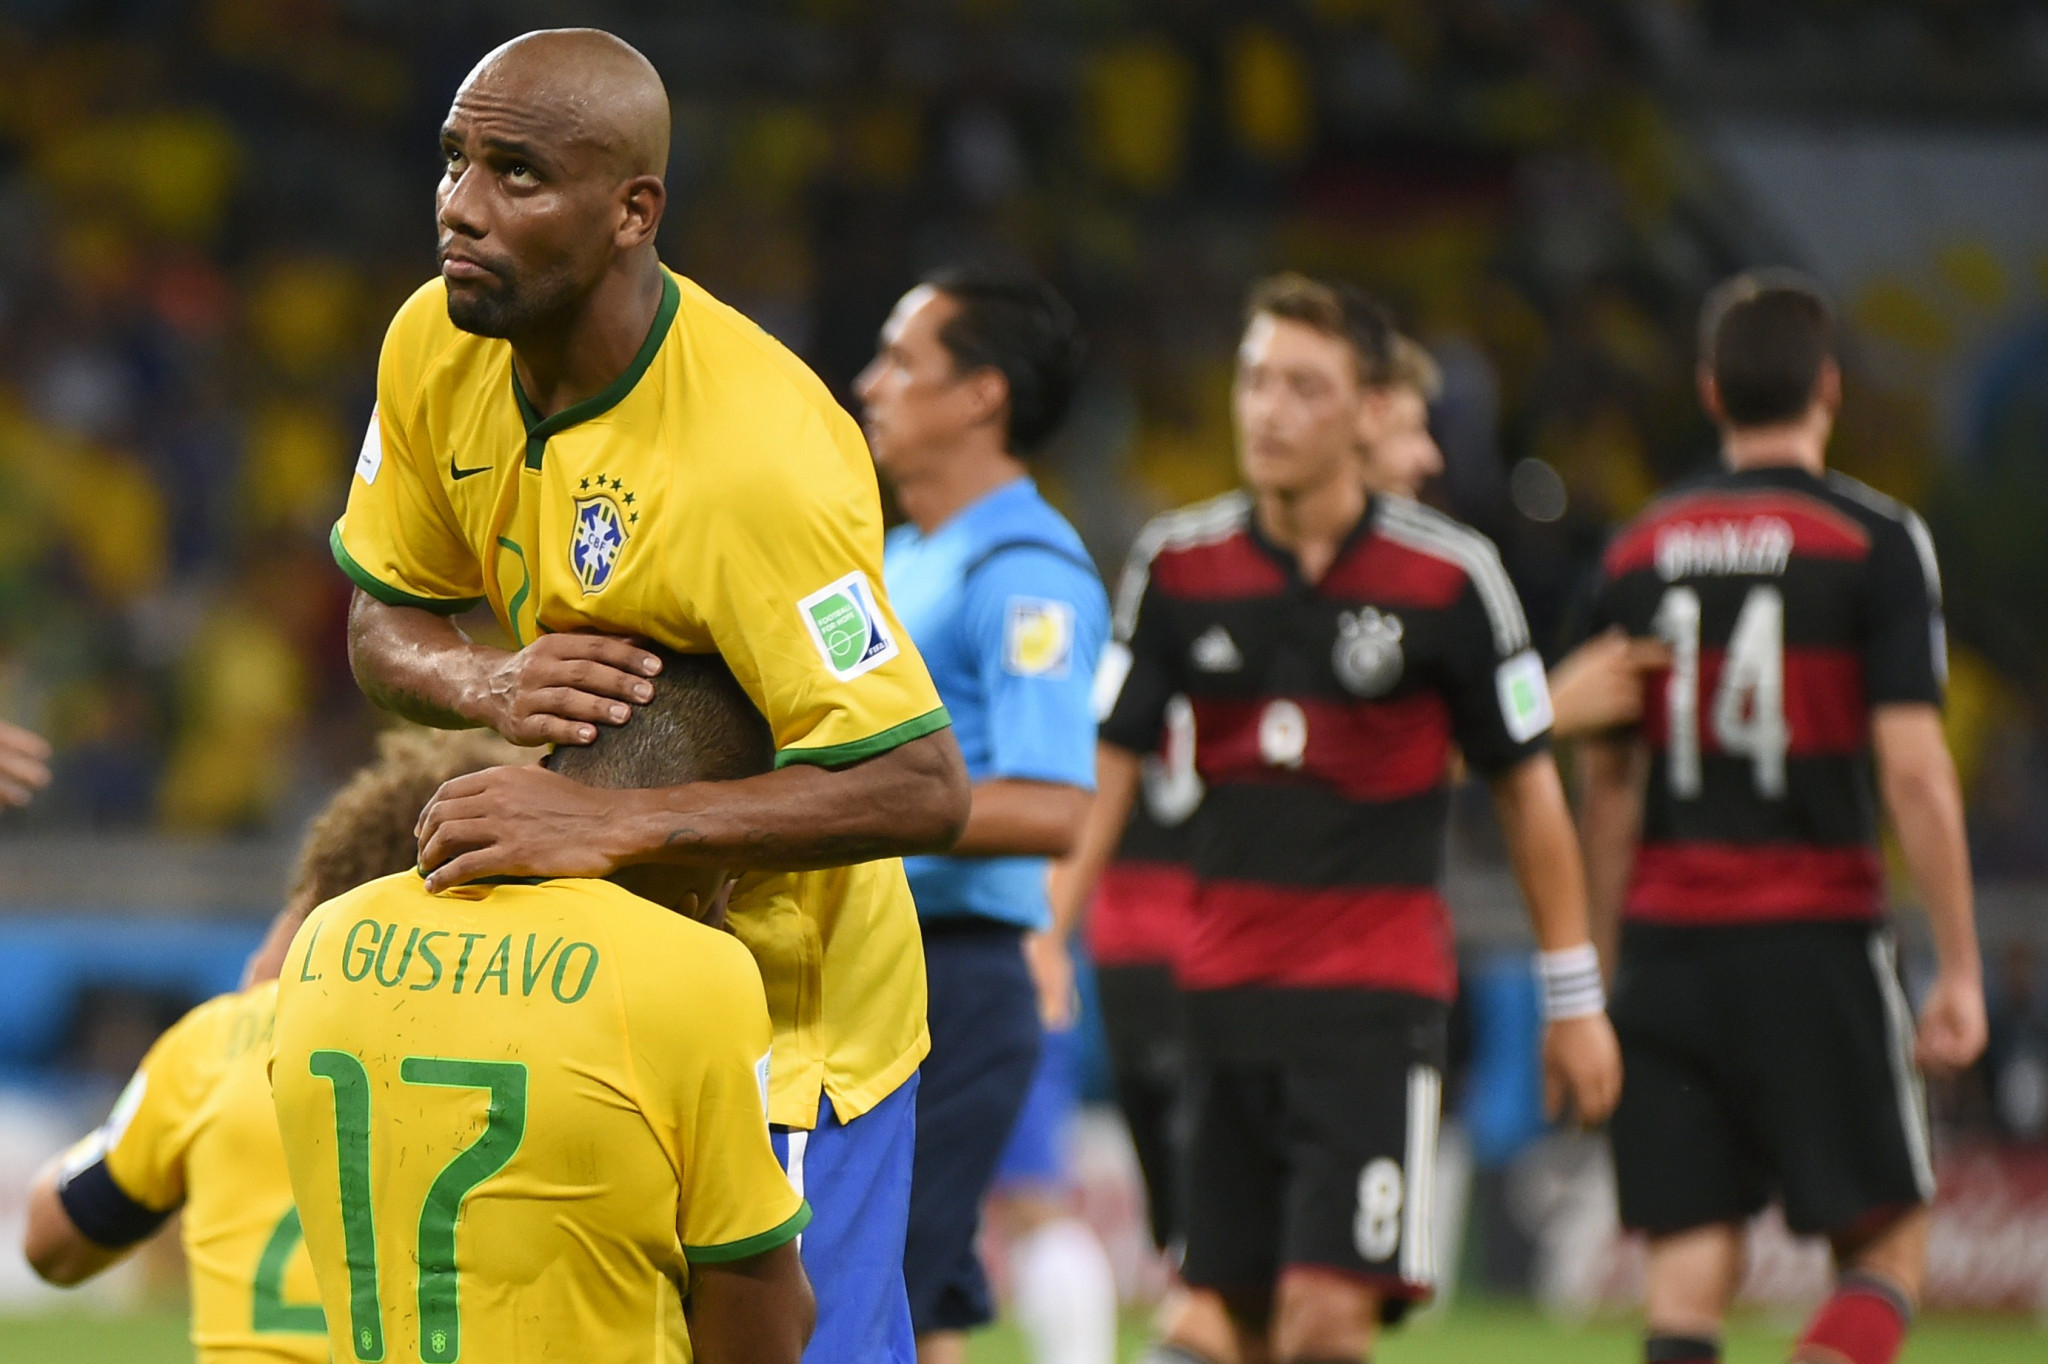 Brazil will do everything to avoid a World Cup defeat similar to the 7-1 drubbing by Germany in 2014